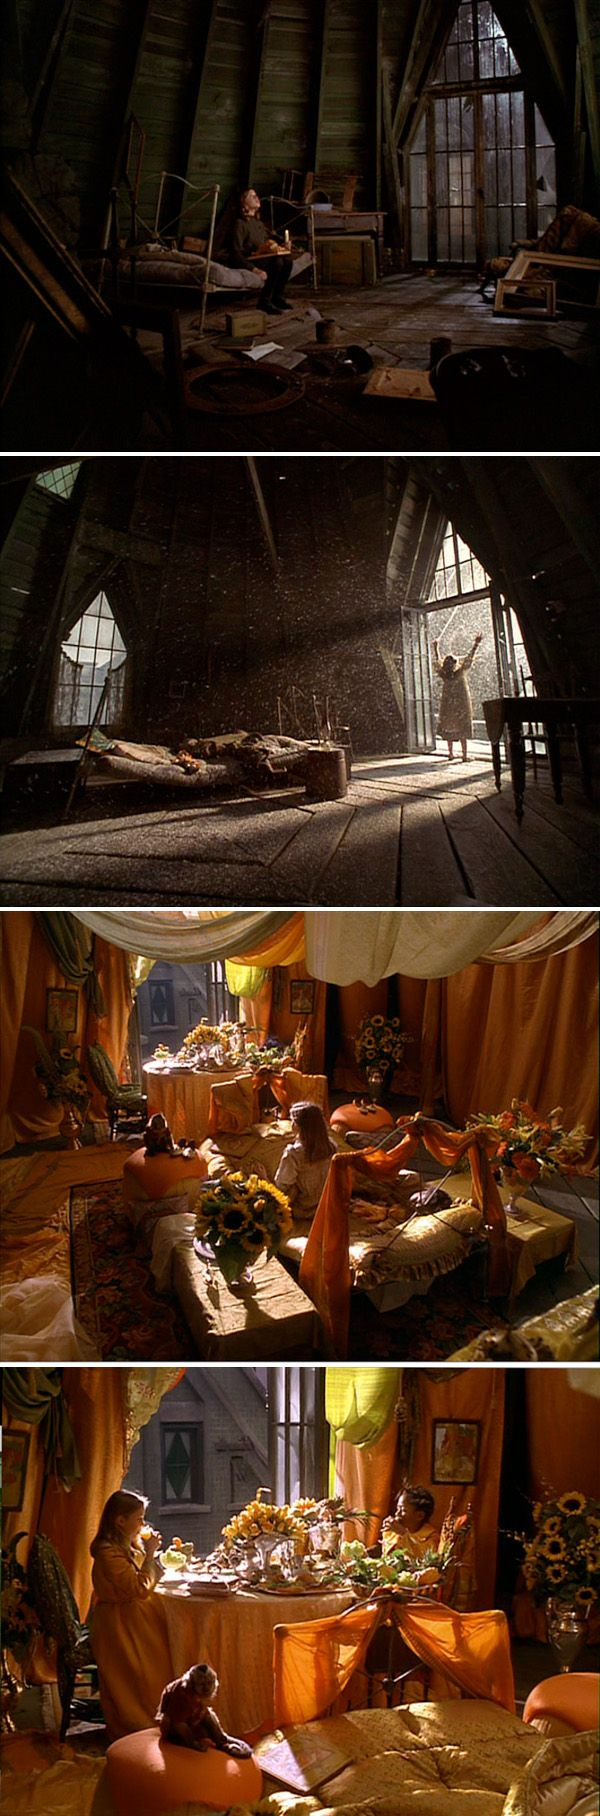 A Little Princess..production design bob welch, art director tom duffield, set decorator cheryl carasik (the team that brought you bettlejuice, edward scissorhands, and men in black.)